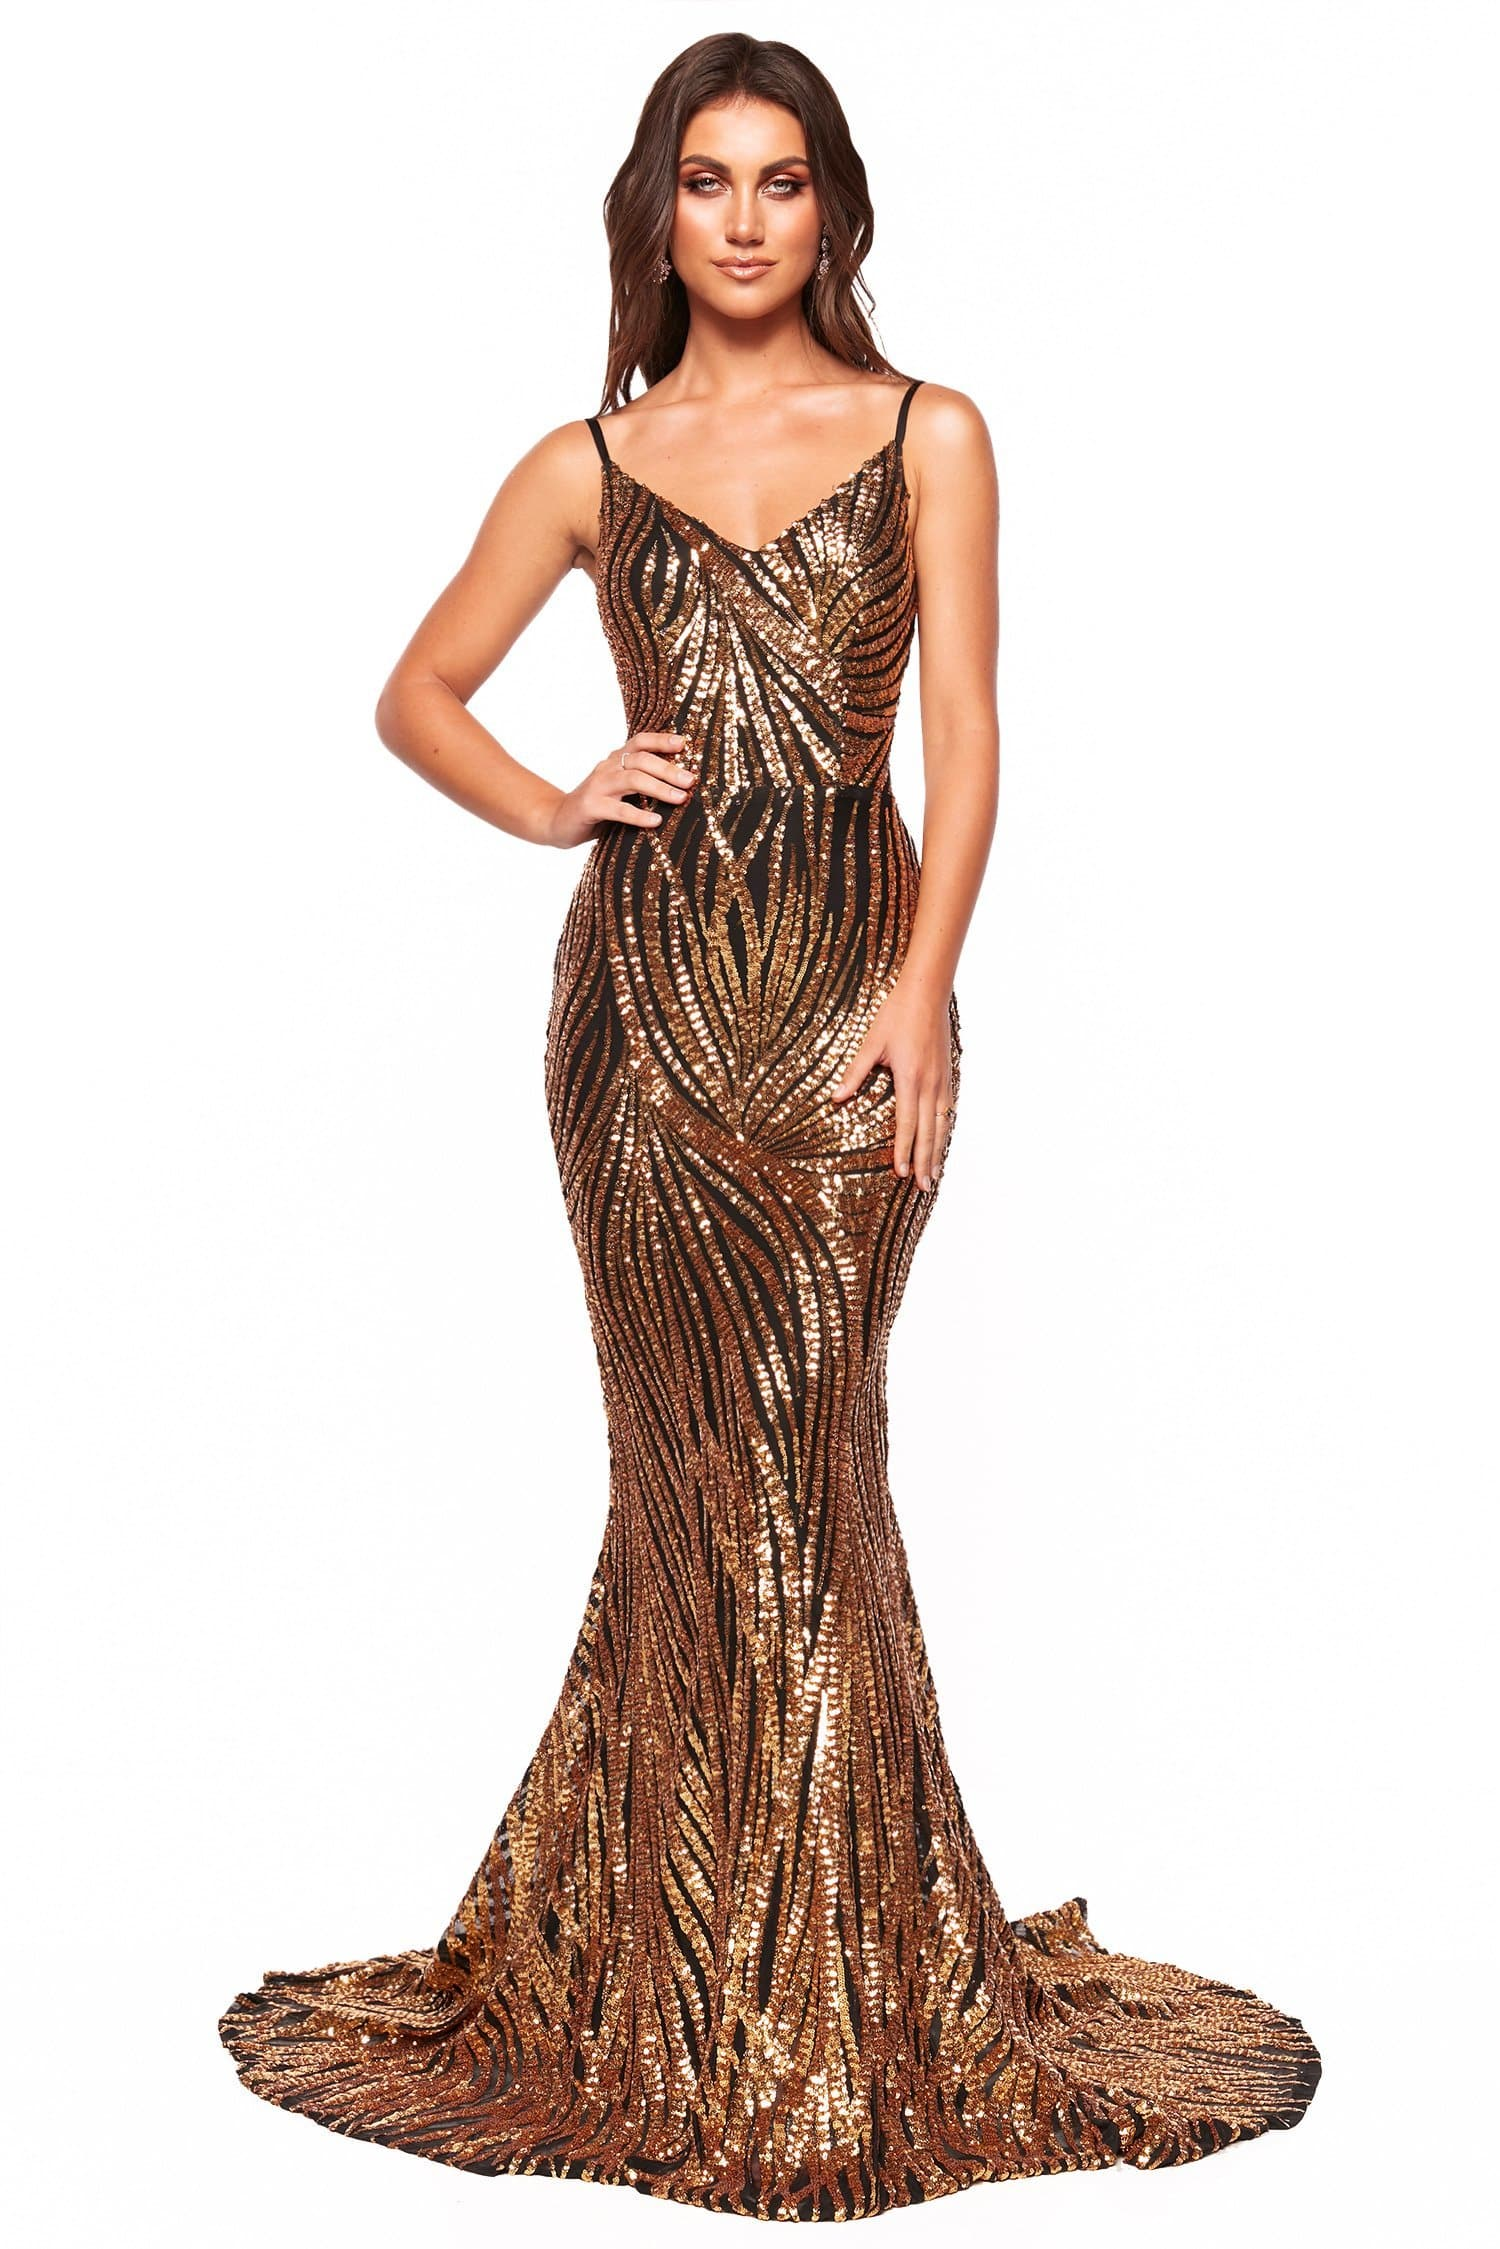 A&N Luxe Jamilla - Gold & Black Patterned Sequin Gown, Sweetheart Neck –  A&N Luxe Label